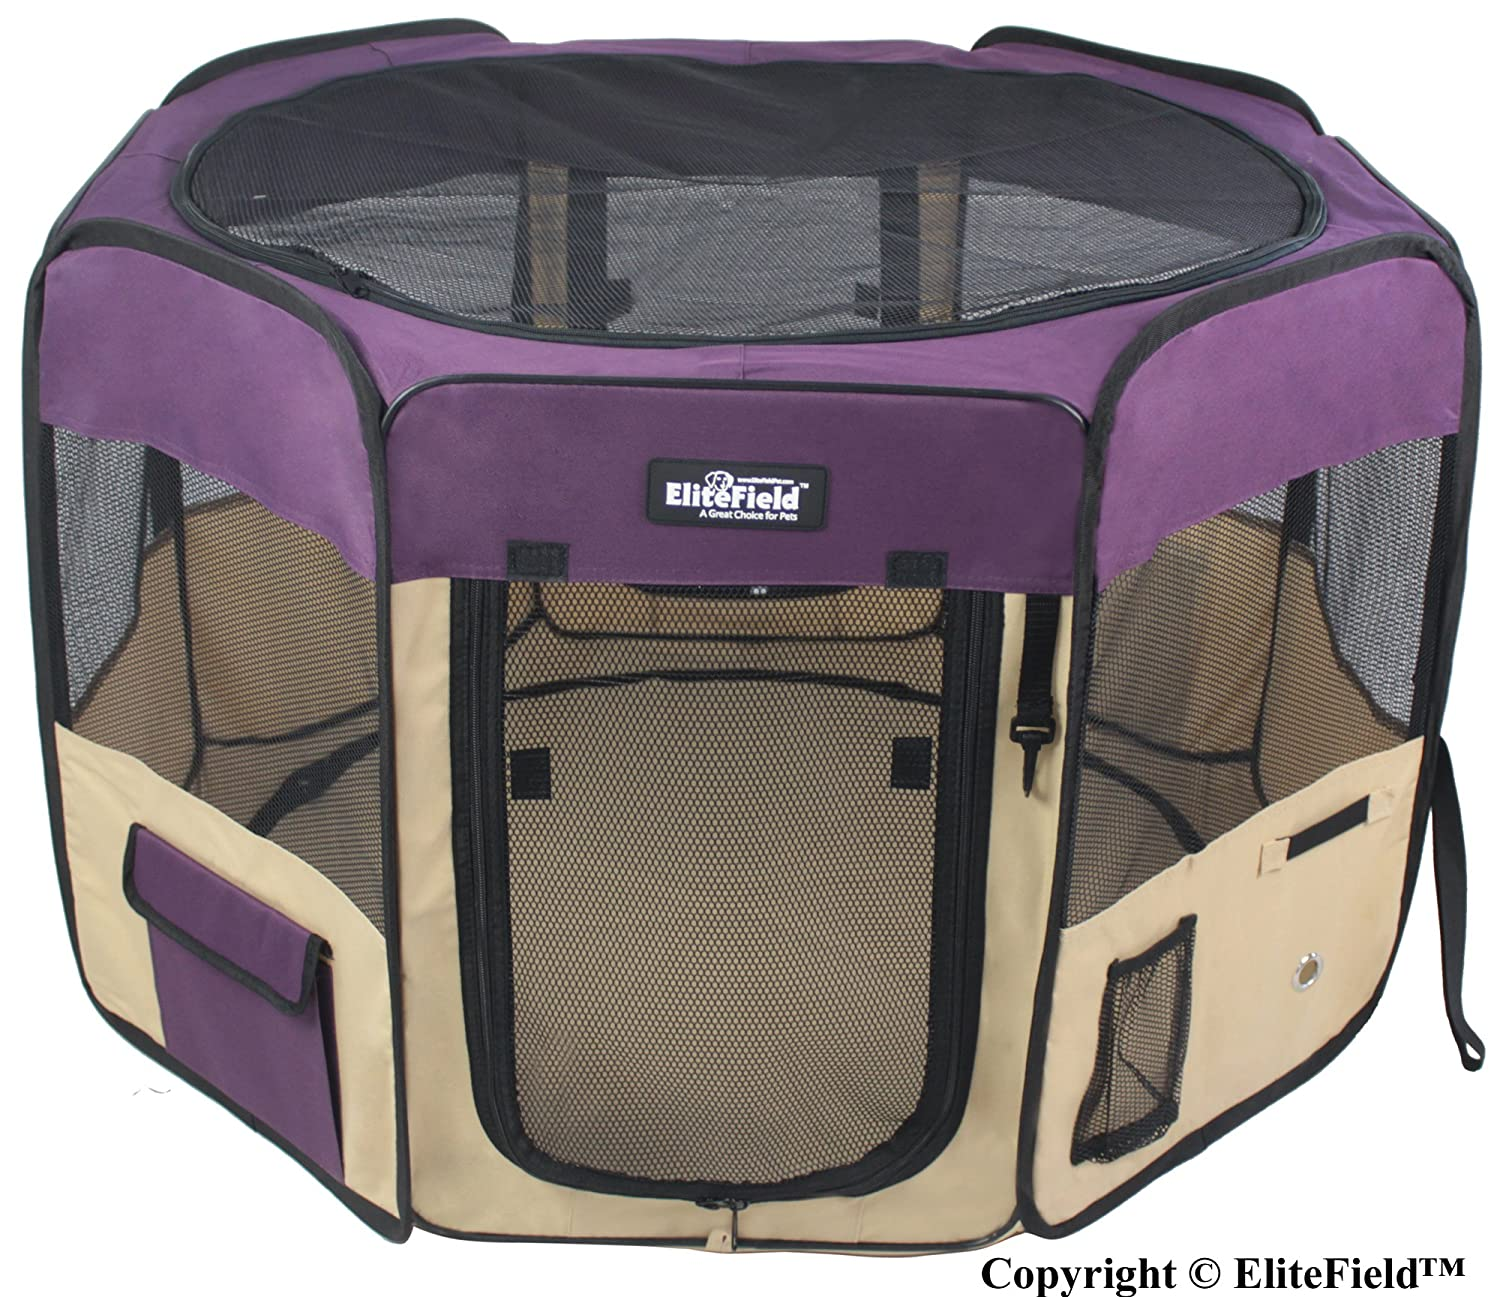 (120cm x 120cm x 80cm H, Purple+Beige) EliteField 2-Door Soft Pet Playpen, Exercise Pen, Multiple Sizes and Colours Available for Dogs, Cats and Other Pets